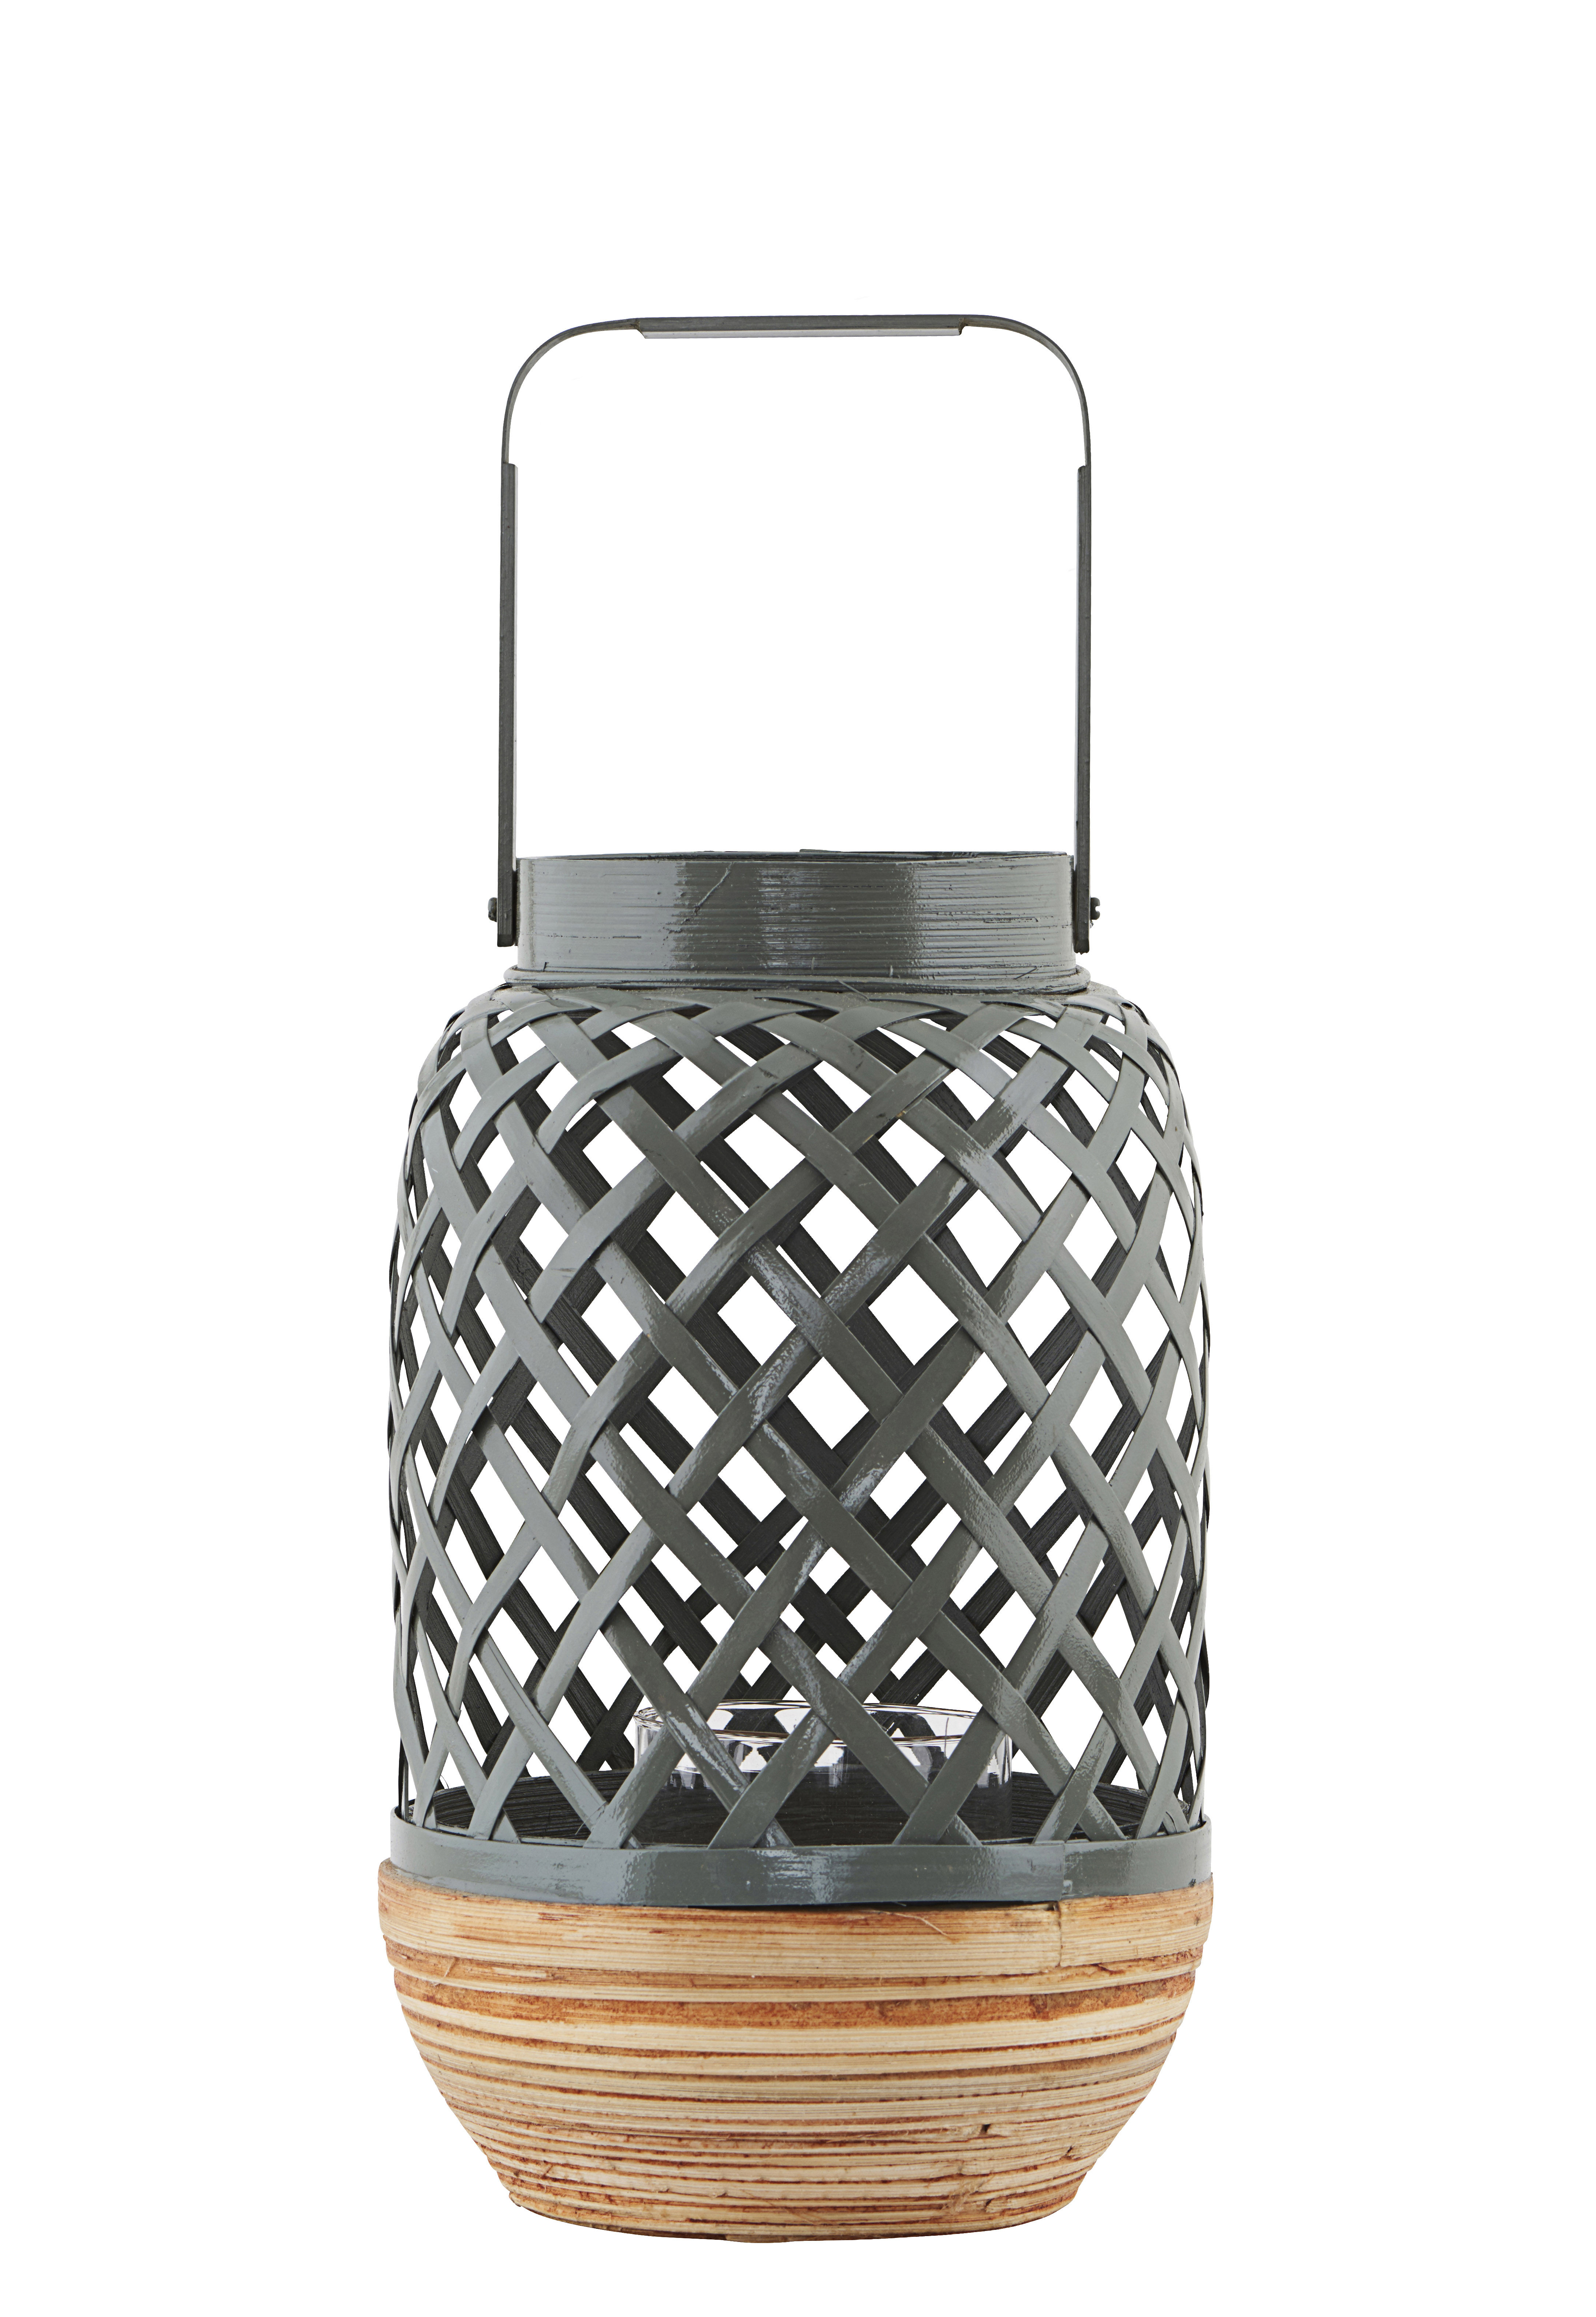 Déco - Bougeoirs, photophores - Photophore Breeze Small / Bambou - Ø 15 x H 24 cm - House Doctor - Gris - Bambou, Verre